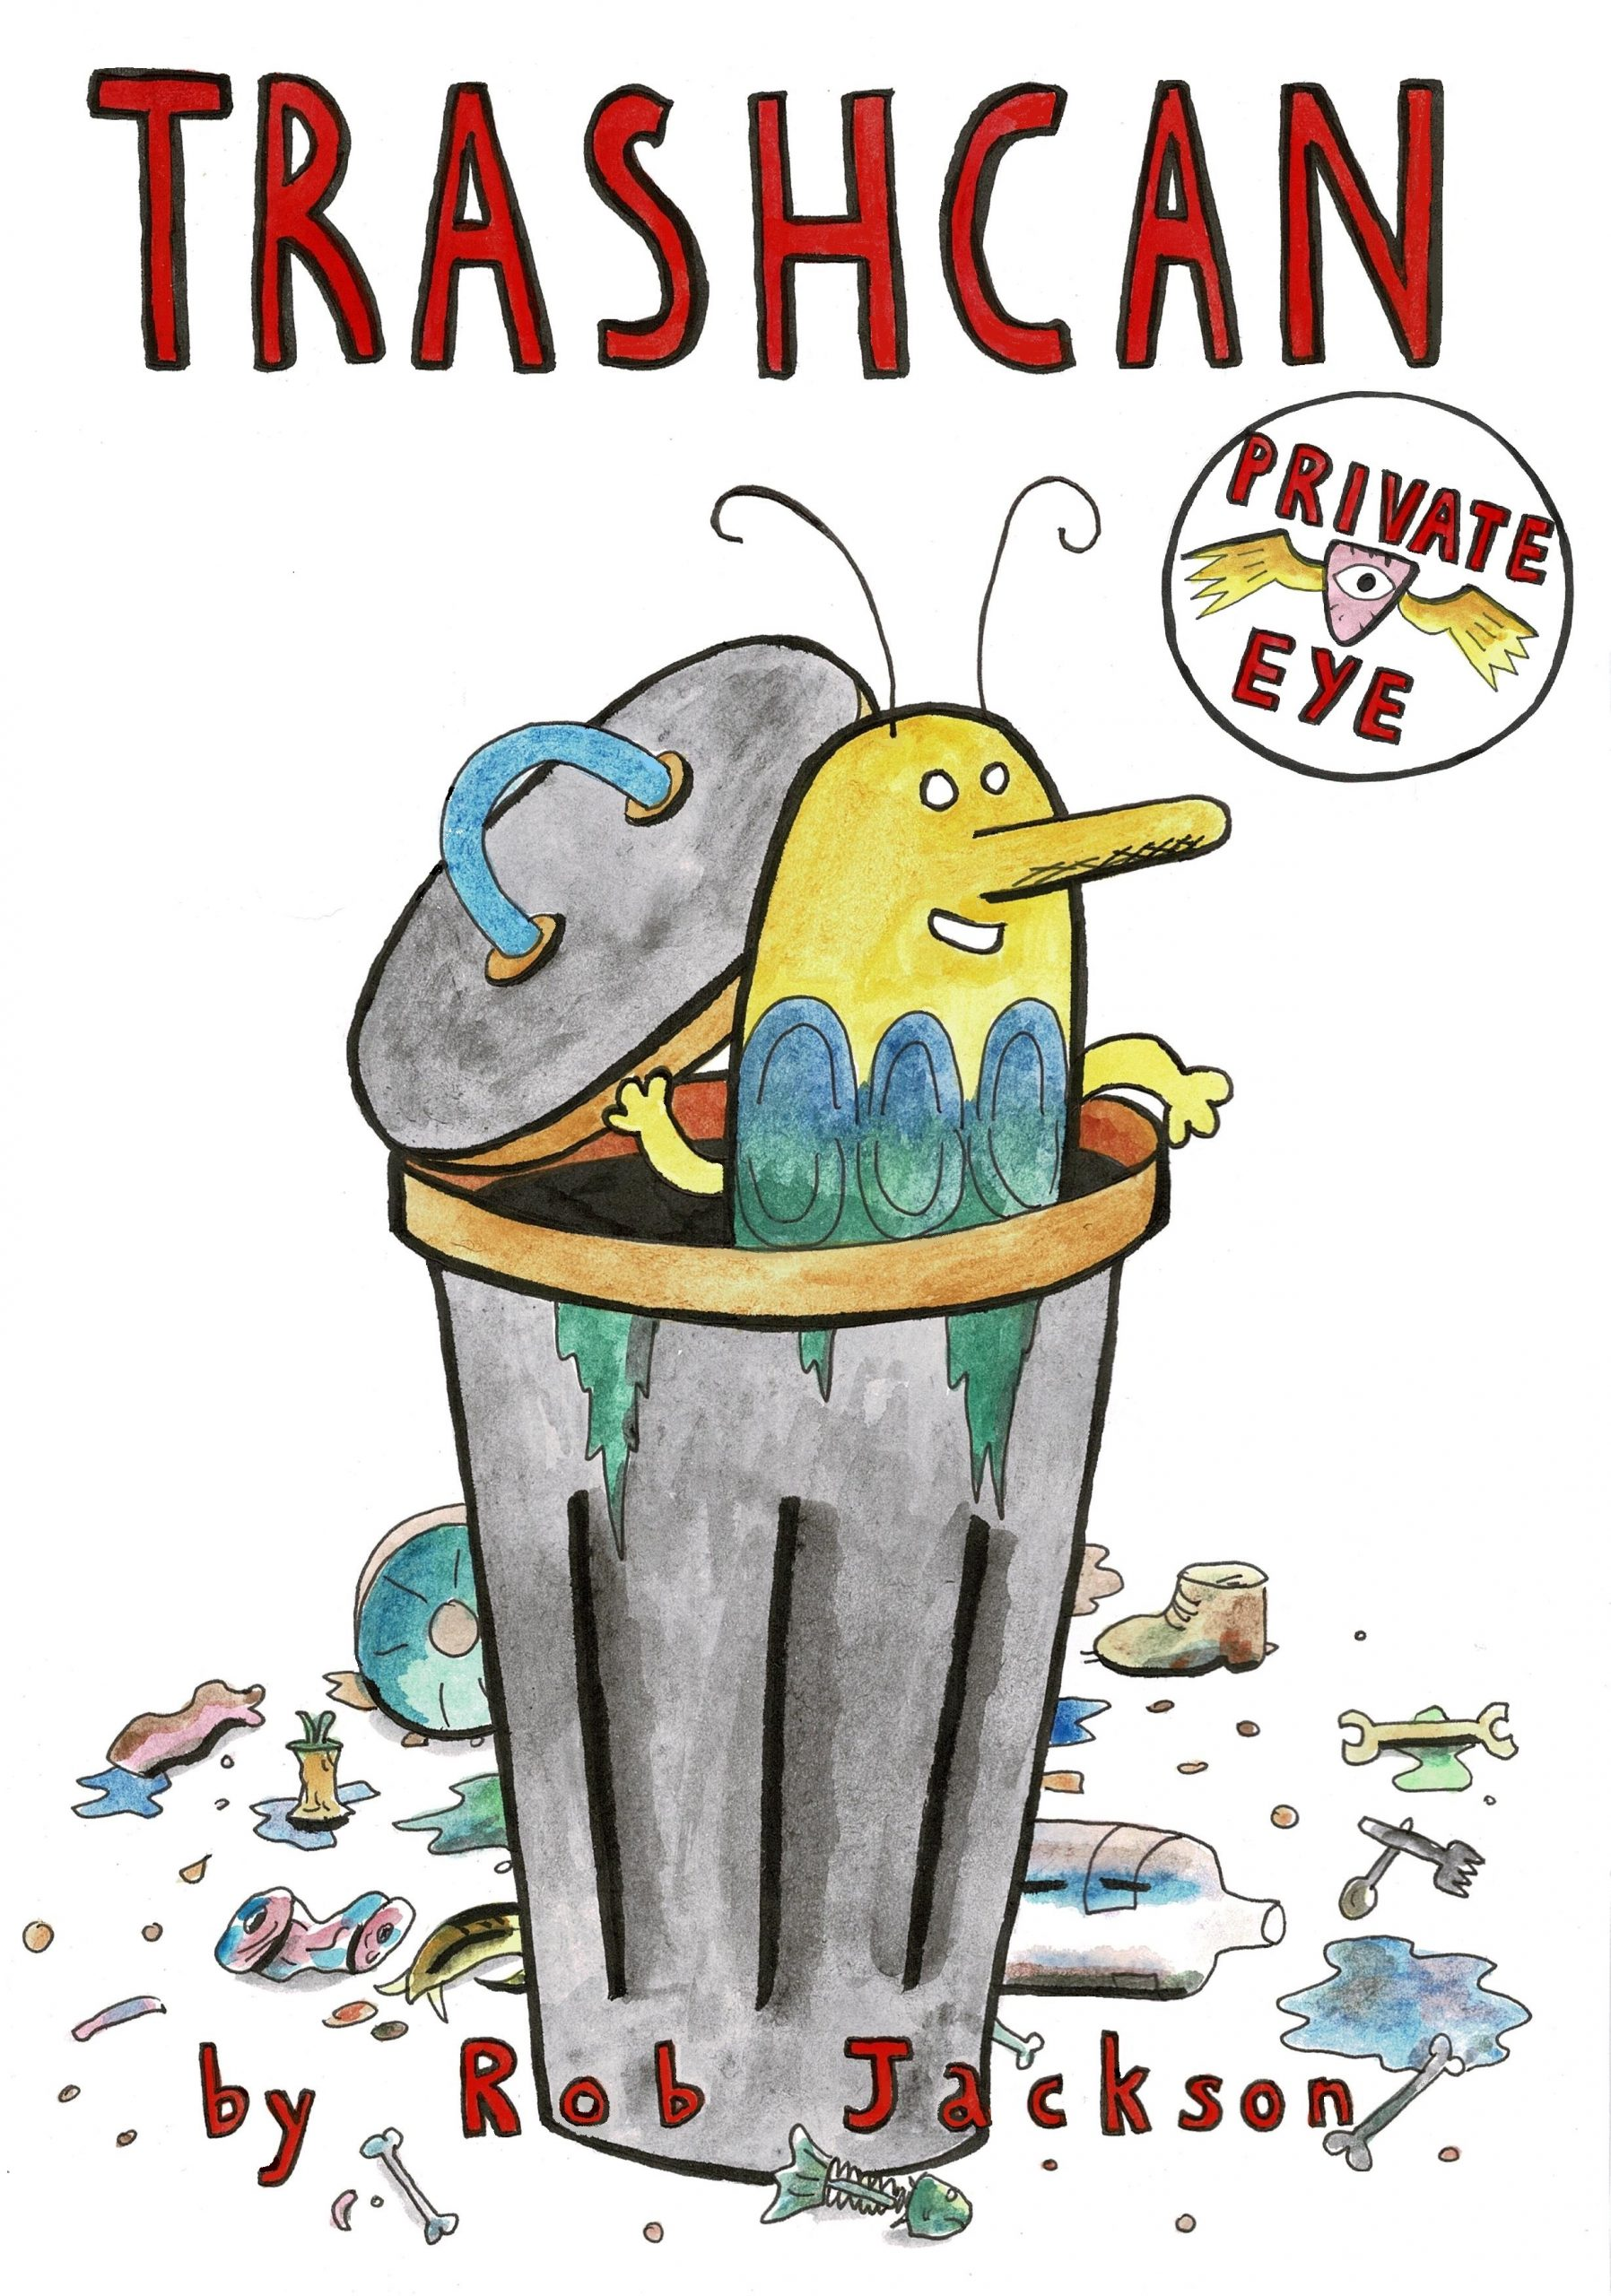 'Trashcan Private Eye'